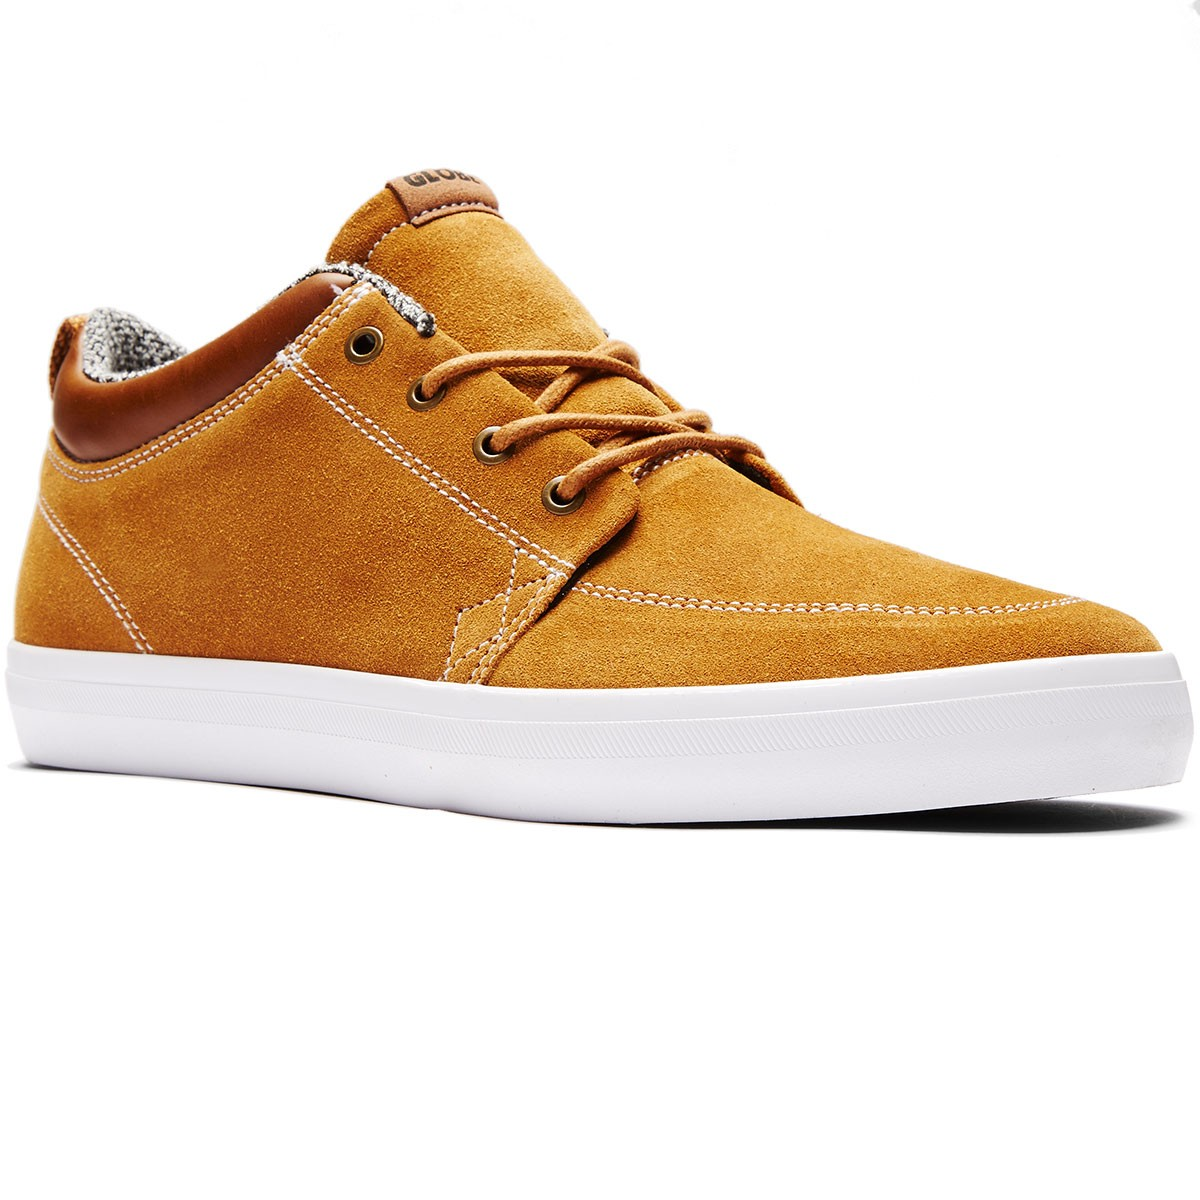 Globe GS Chukka Shoes - Dark Caramel/White